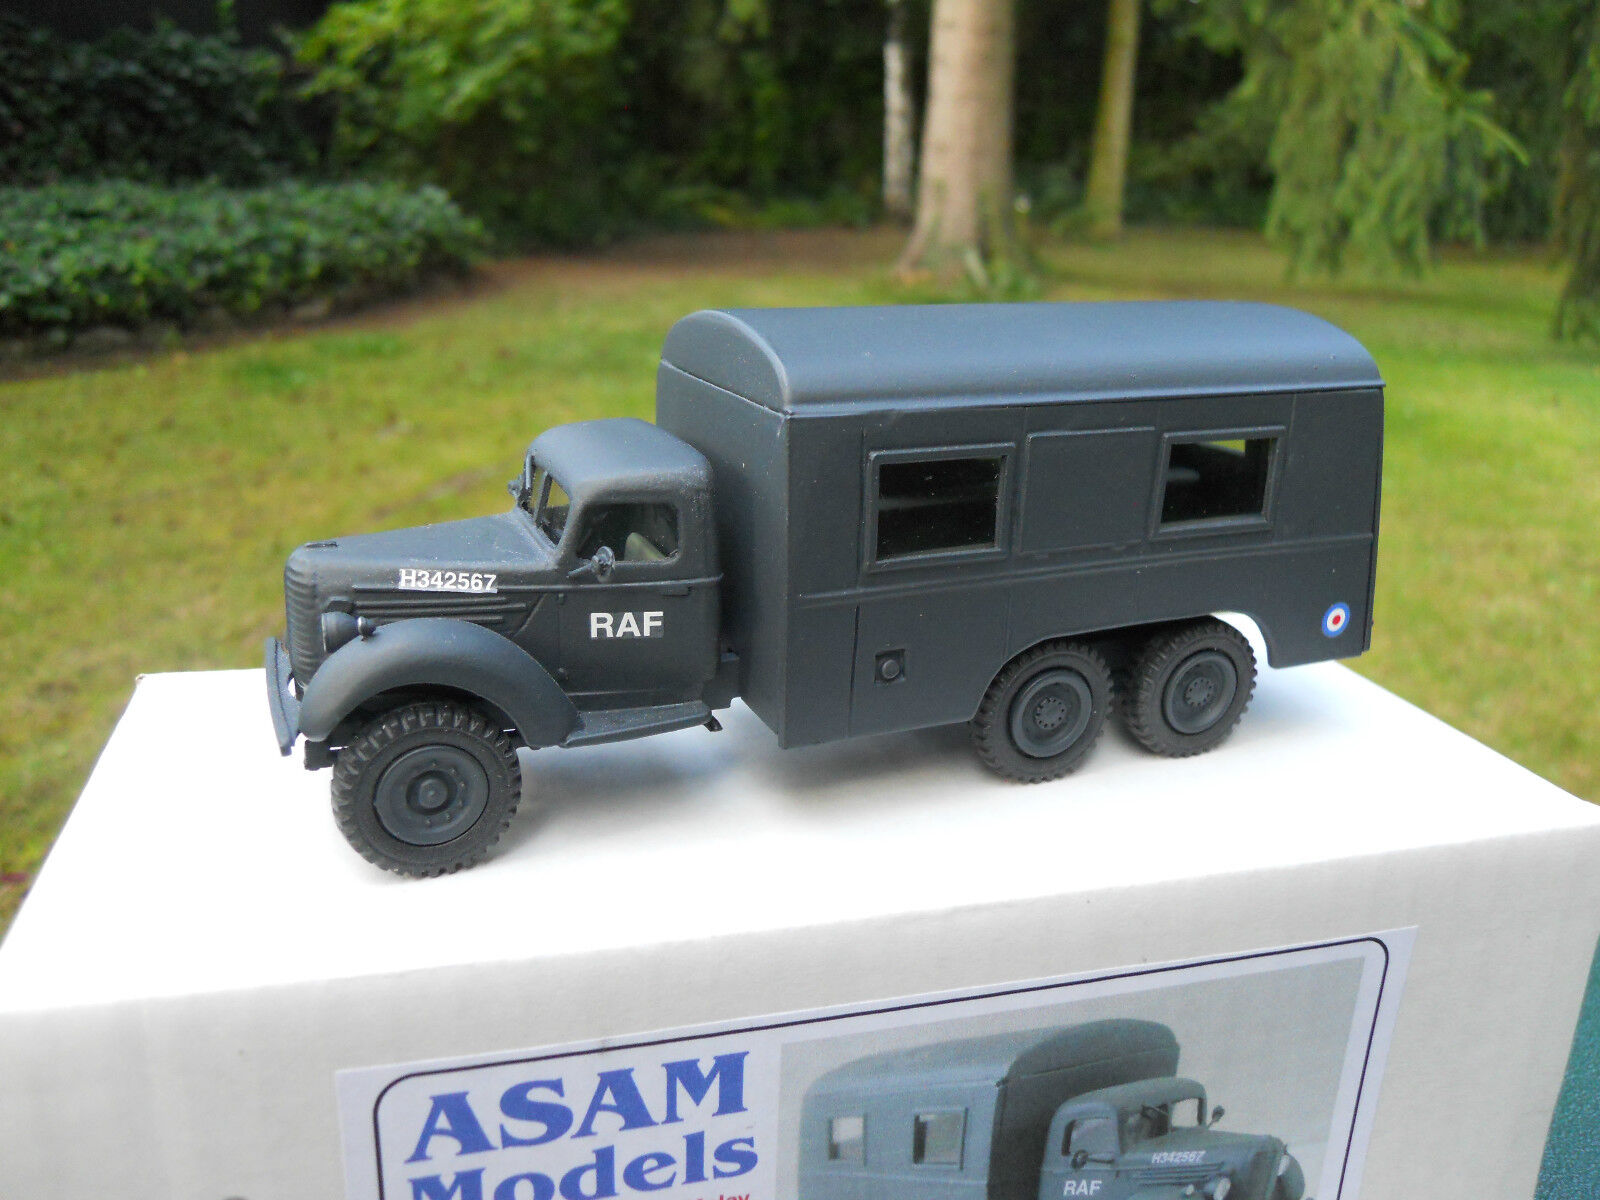 Military vehicle asam models ref ht 328 ford sussex 6x4 raf crew bus mint box